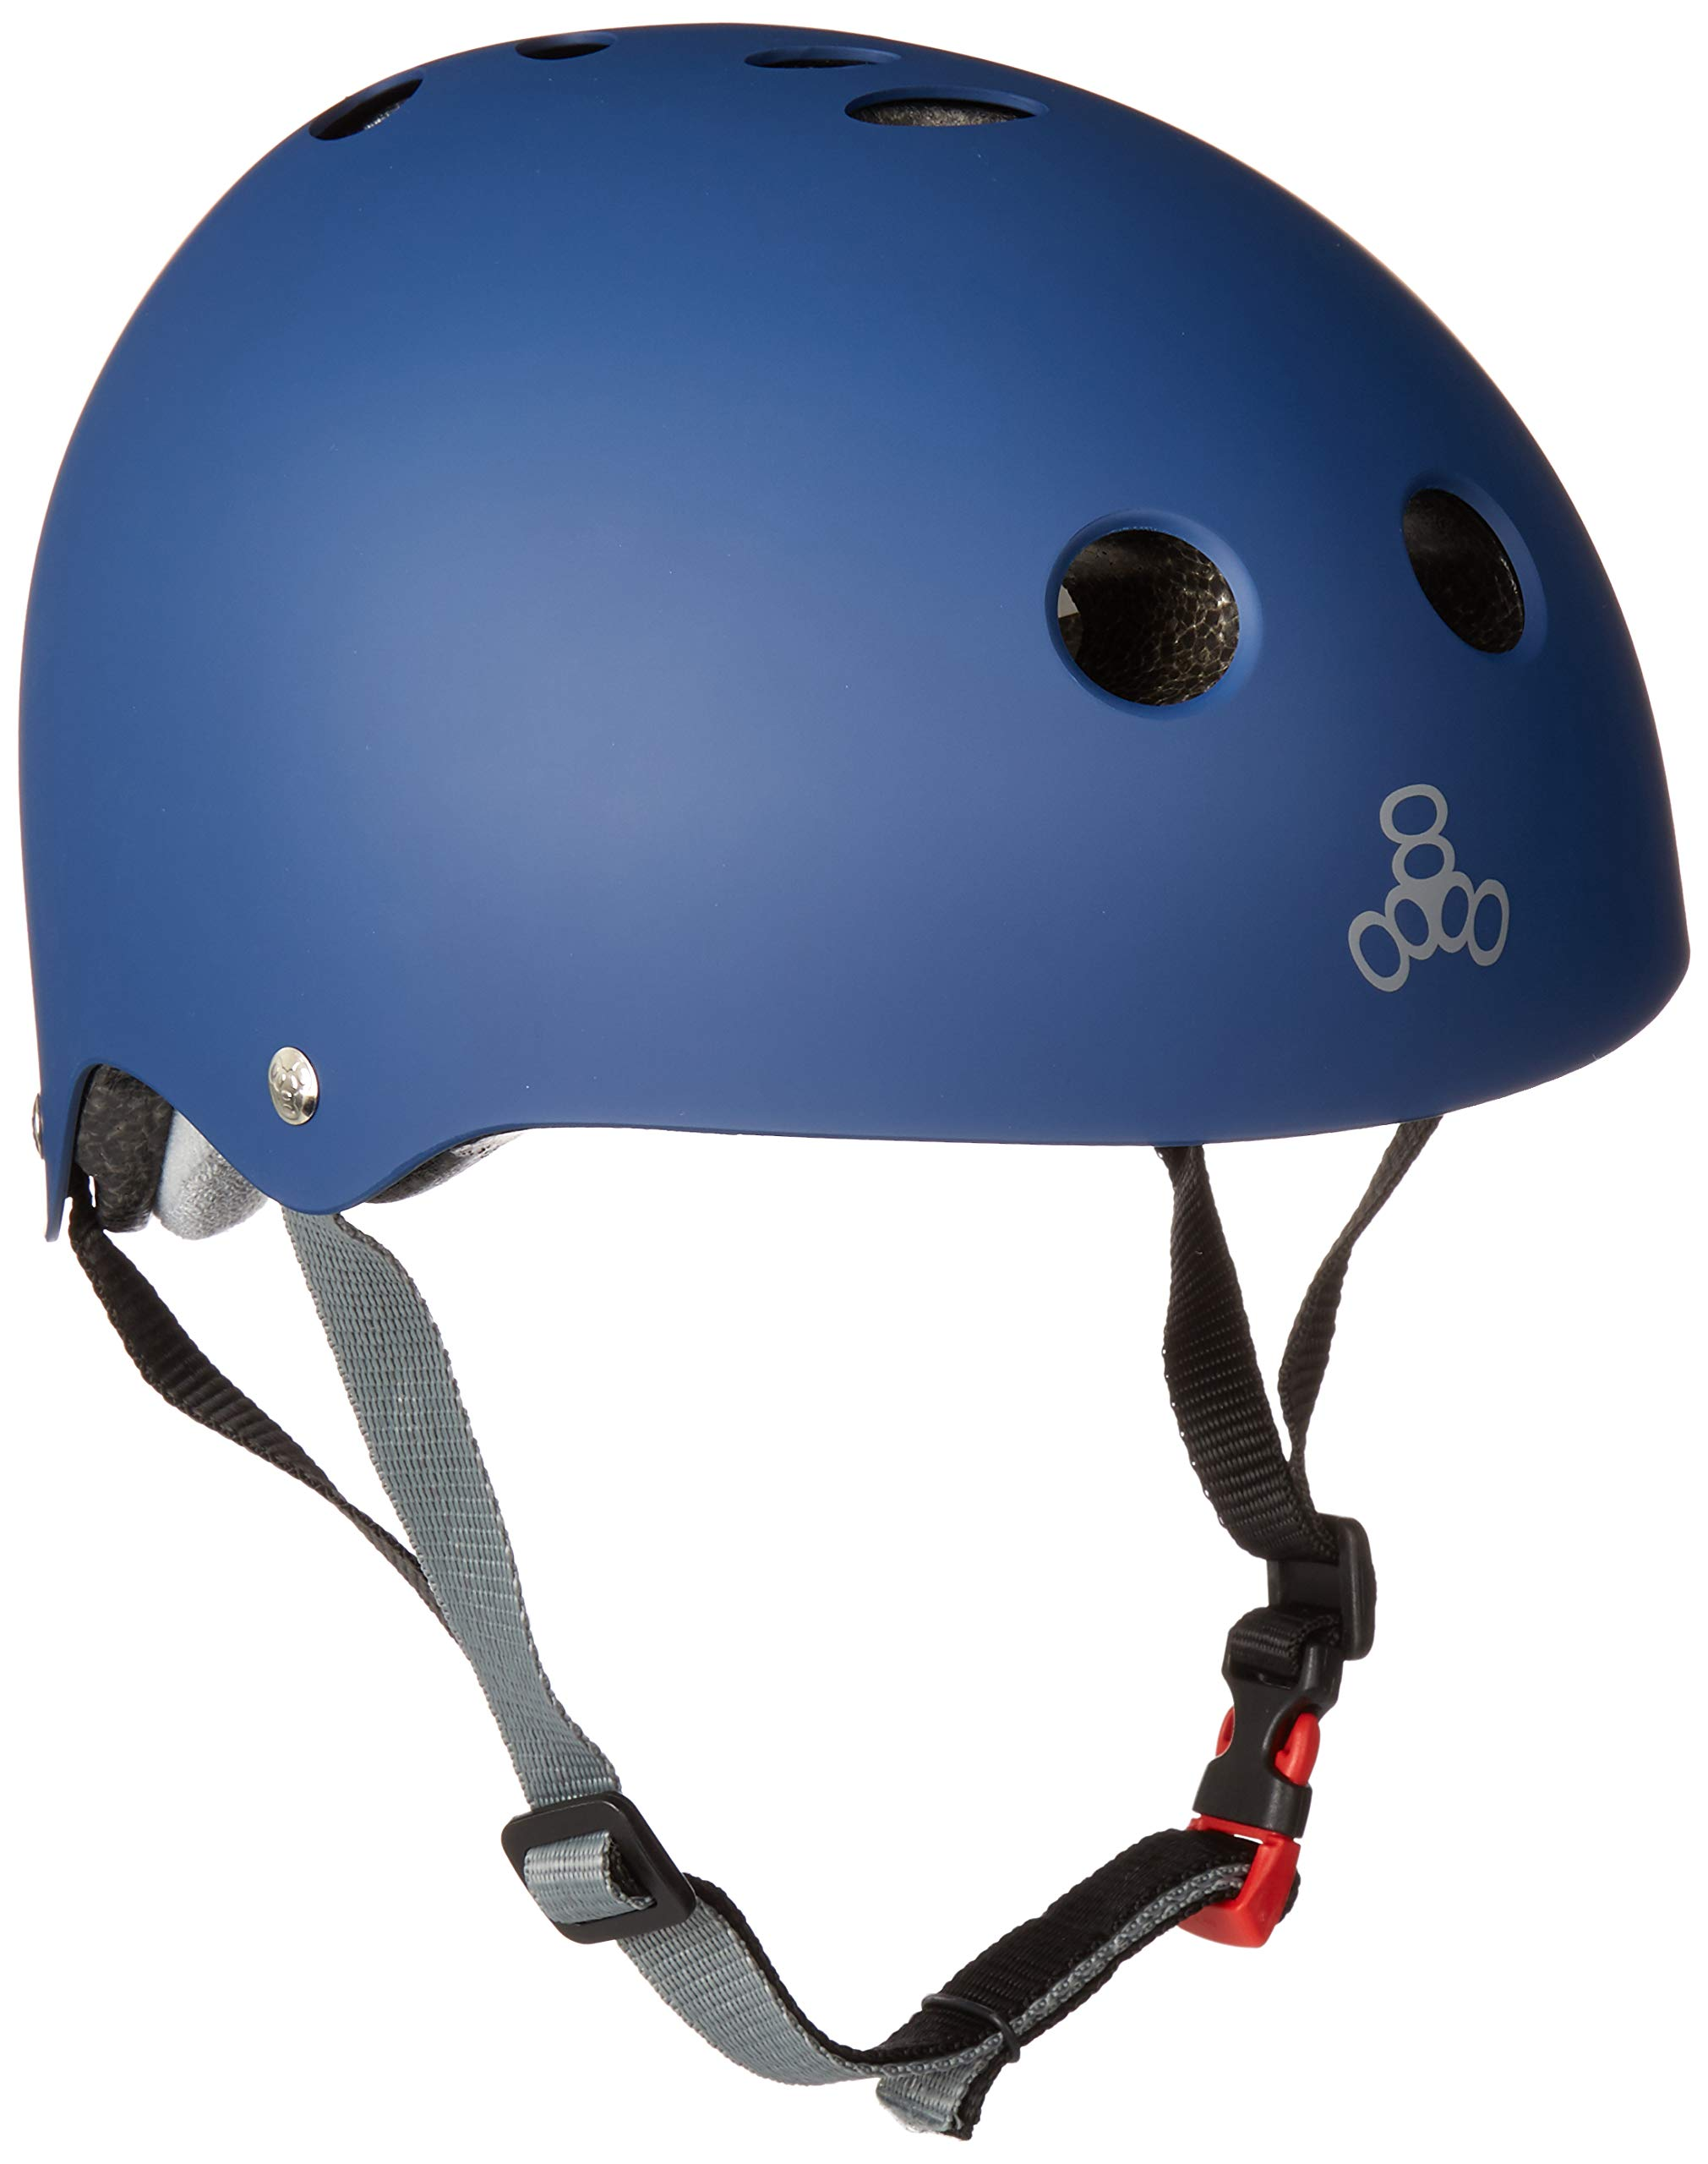 Triple Eight THE Certified Sweatsaver Helmet for Skateboarding, BMX, and Roller Skating, Navy Rubber, Small / Medium